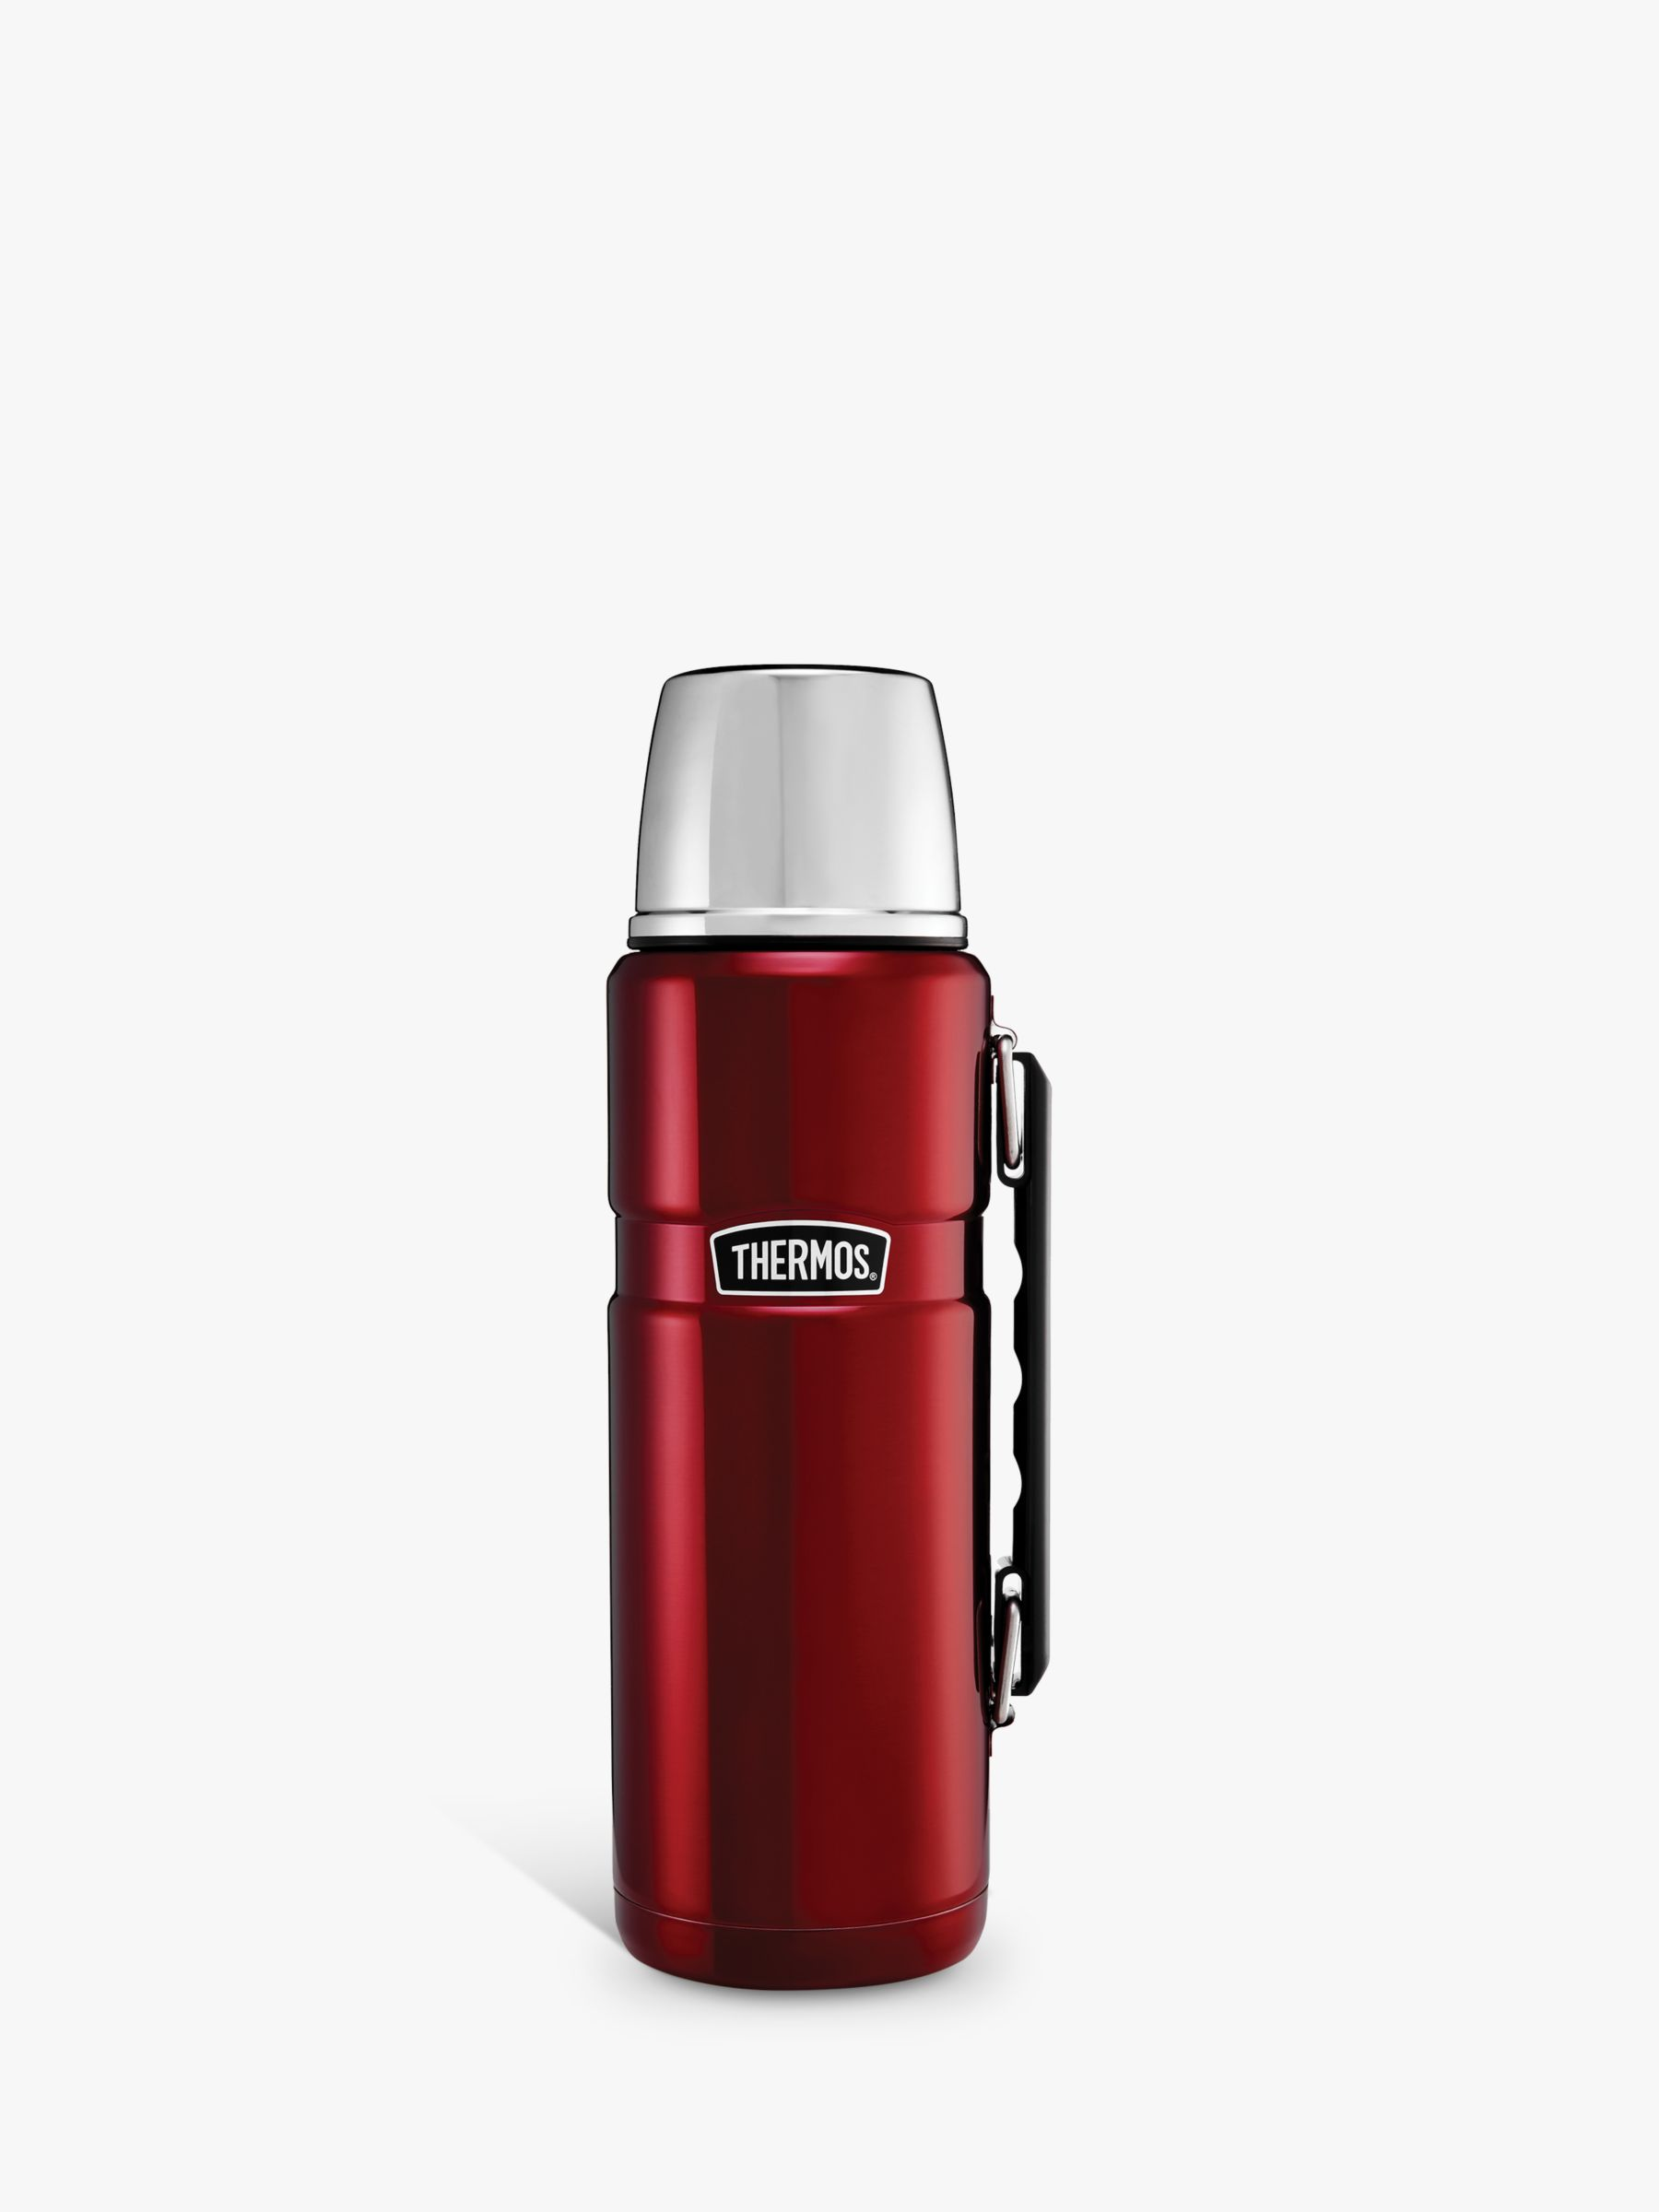 Thermos Thermos Stainless Steel King Flask, 1.2L, Red/Silver